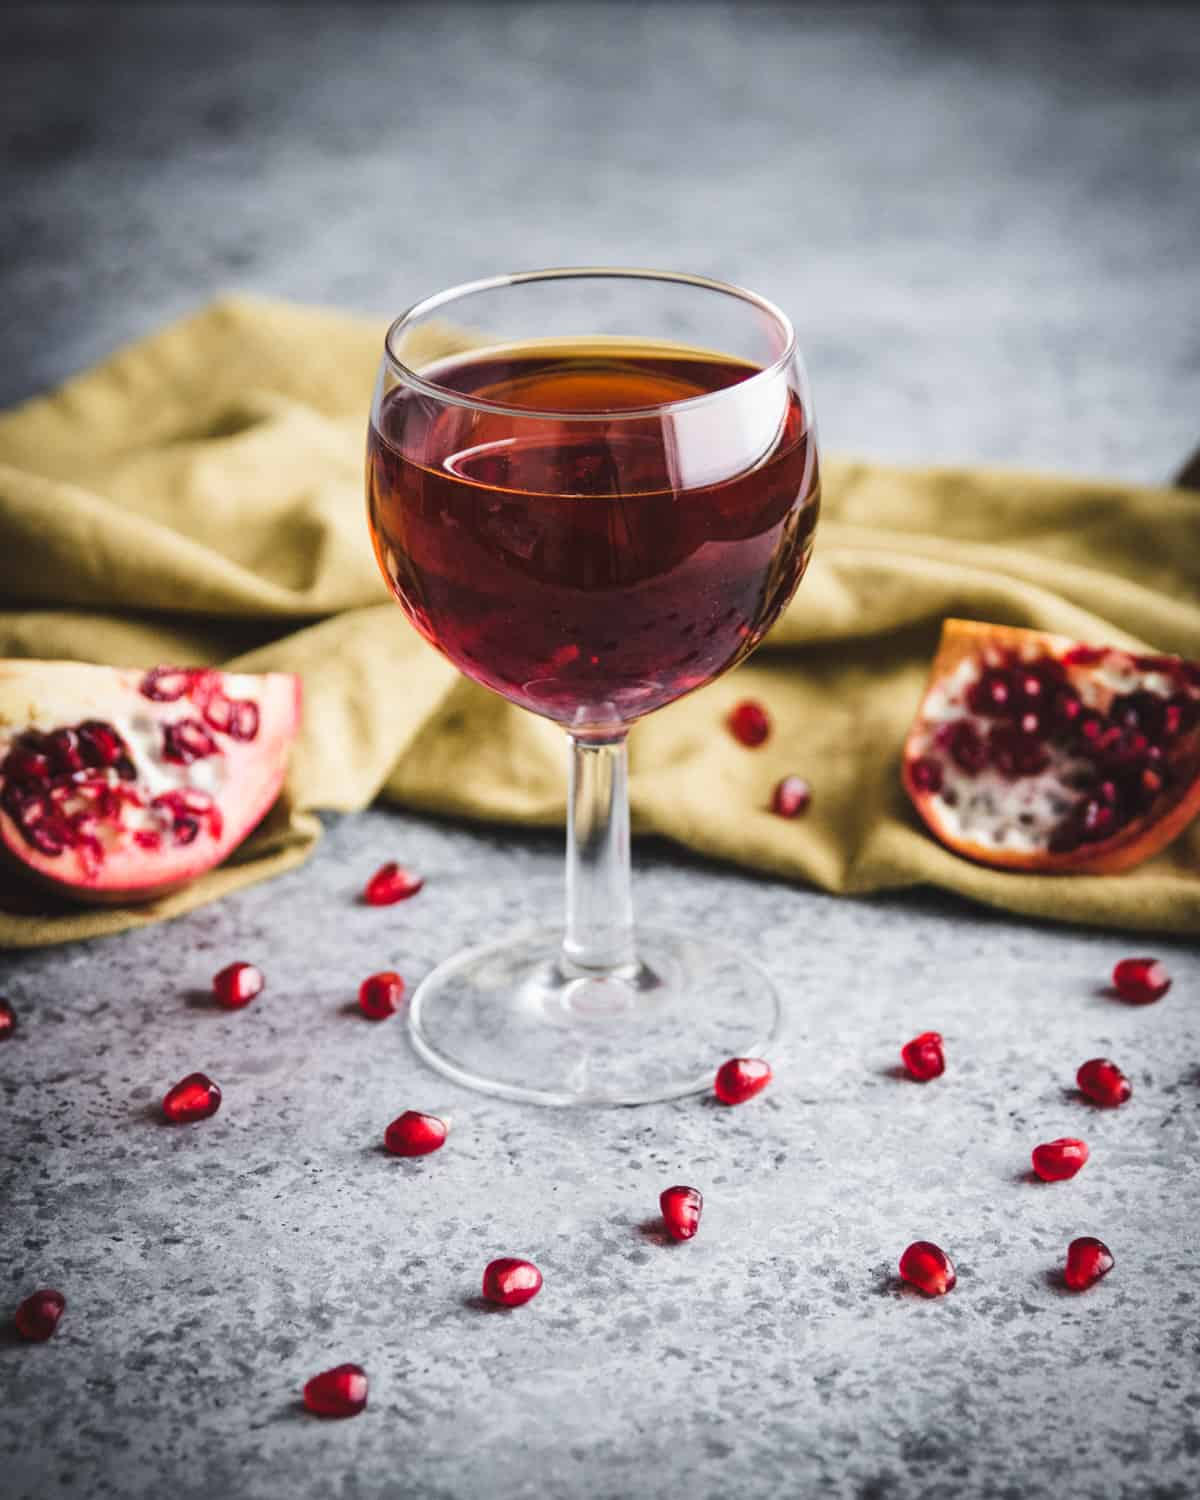 a glass of pomegranate wine on a table with pomegrante seeds